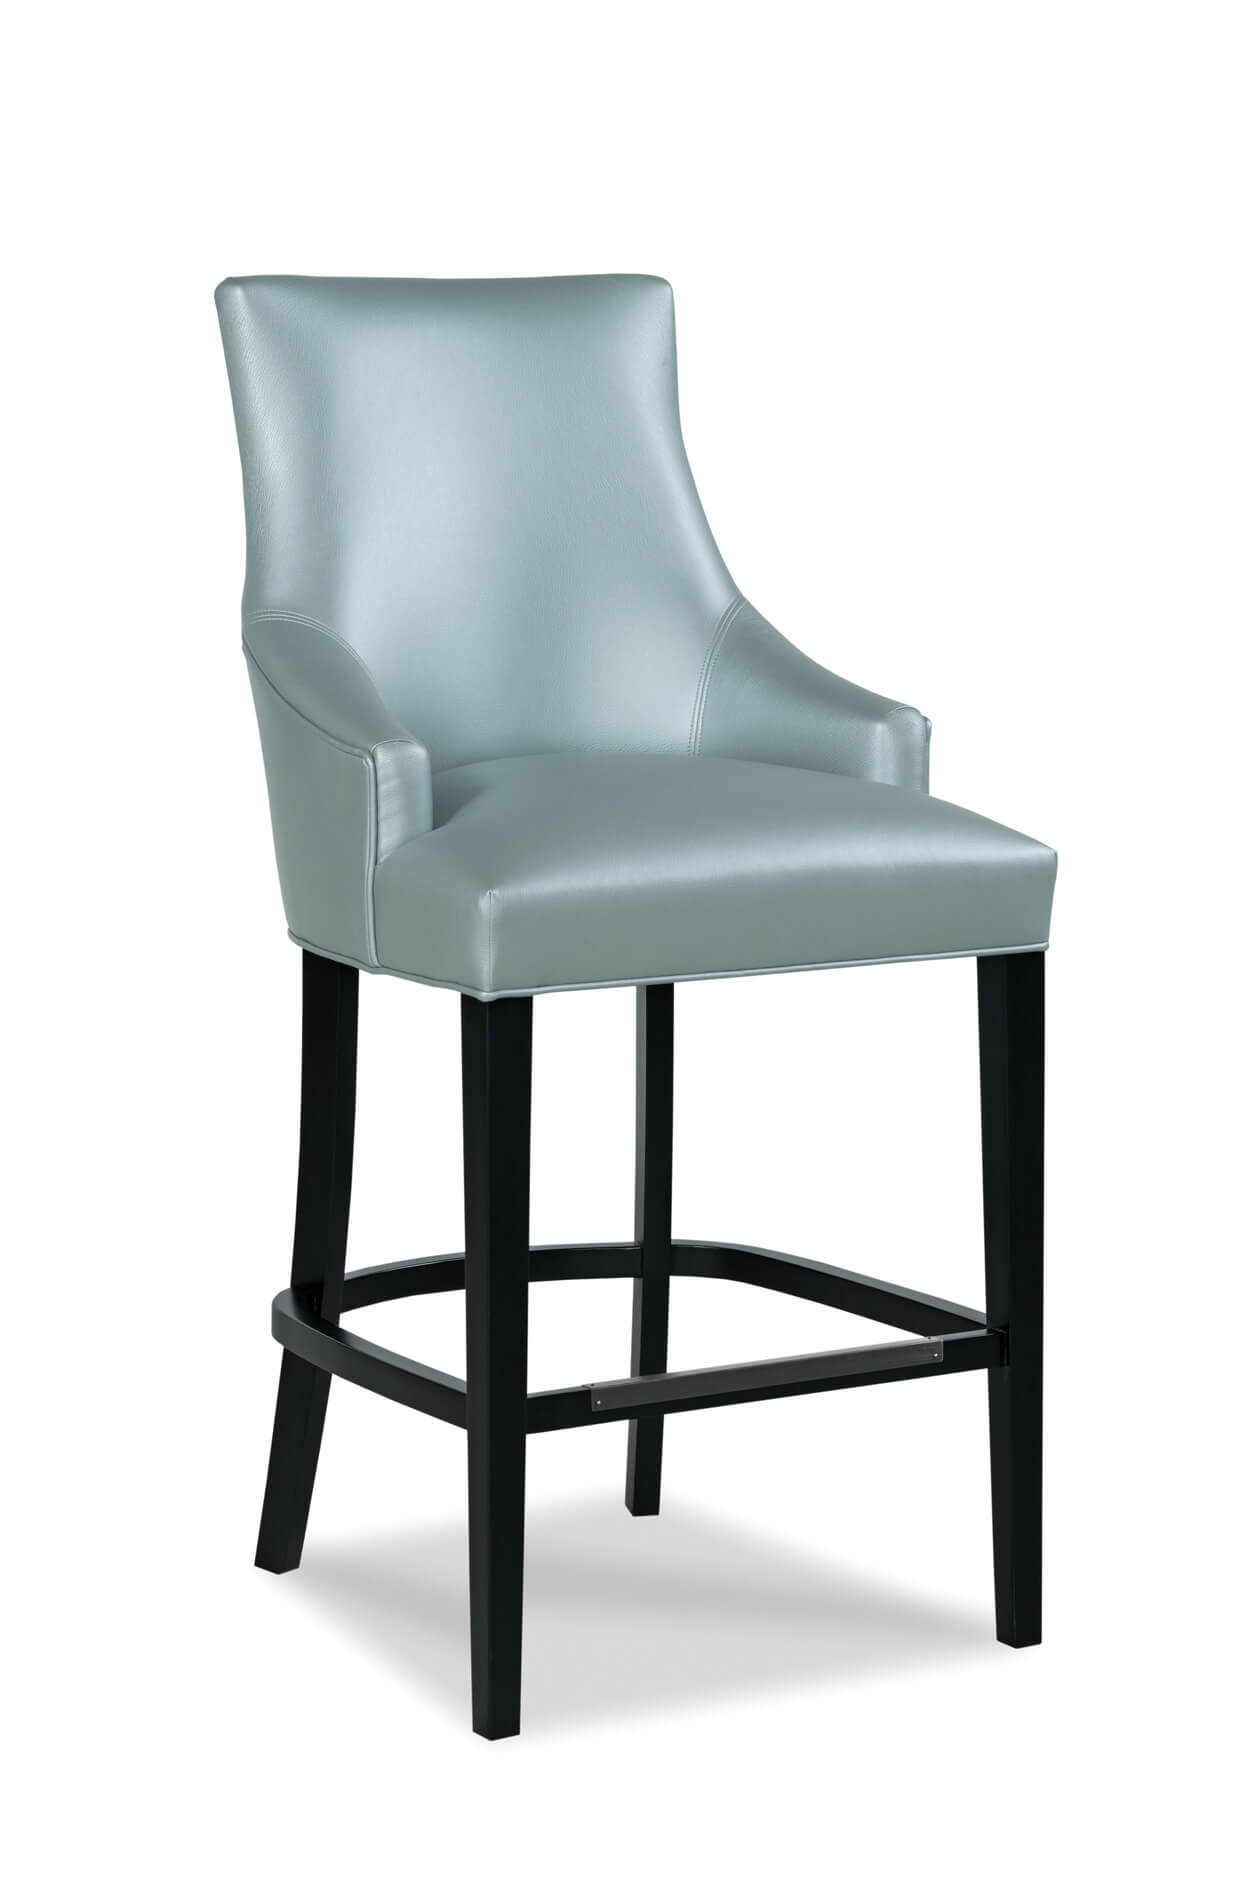 Buy Bar Stools with Arms – Free Shipping!